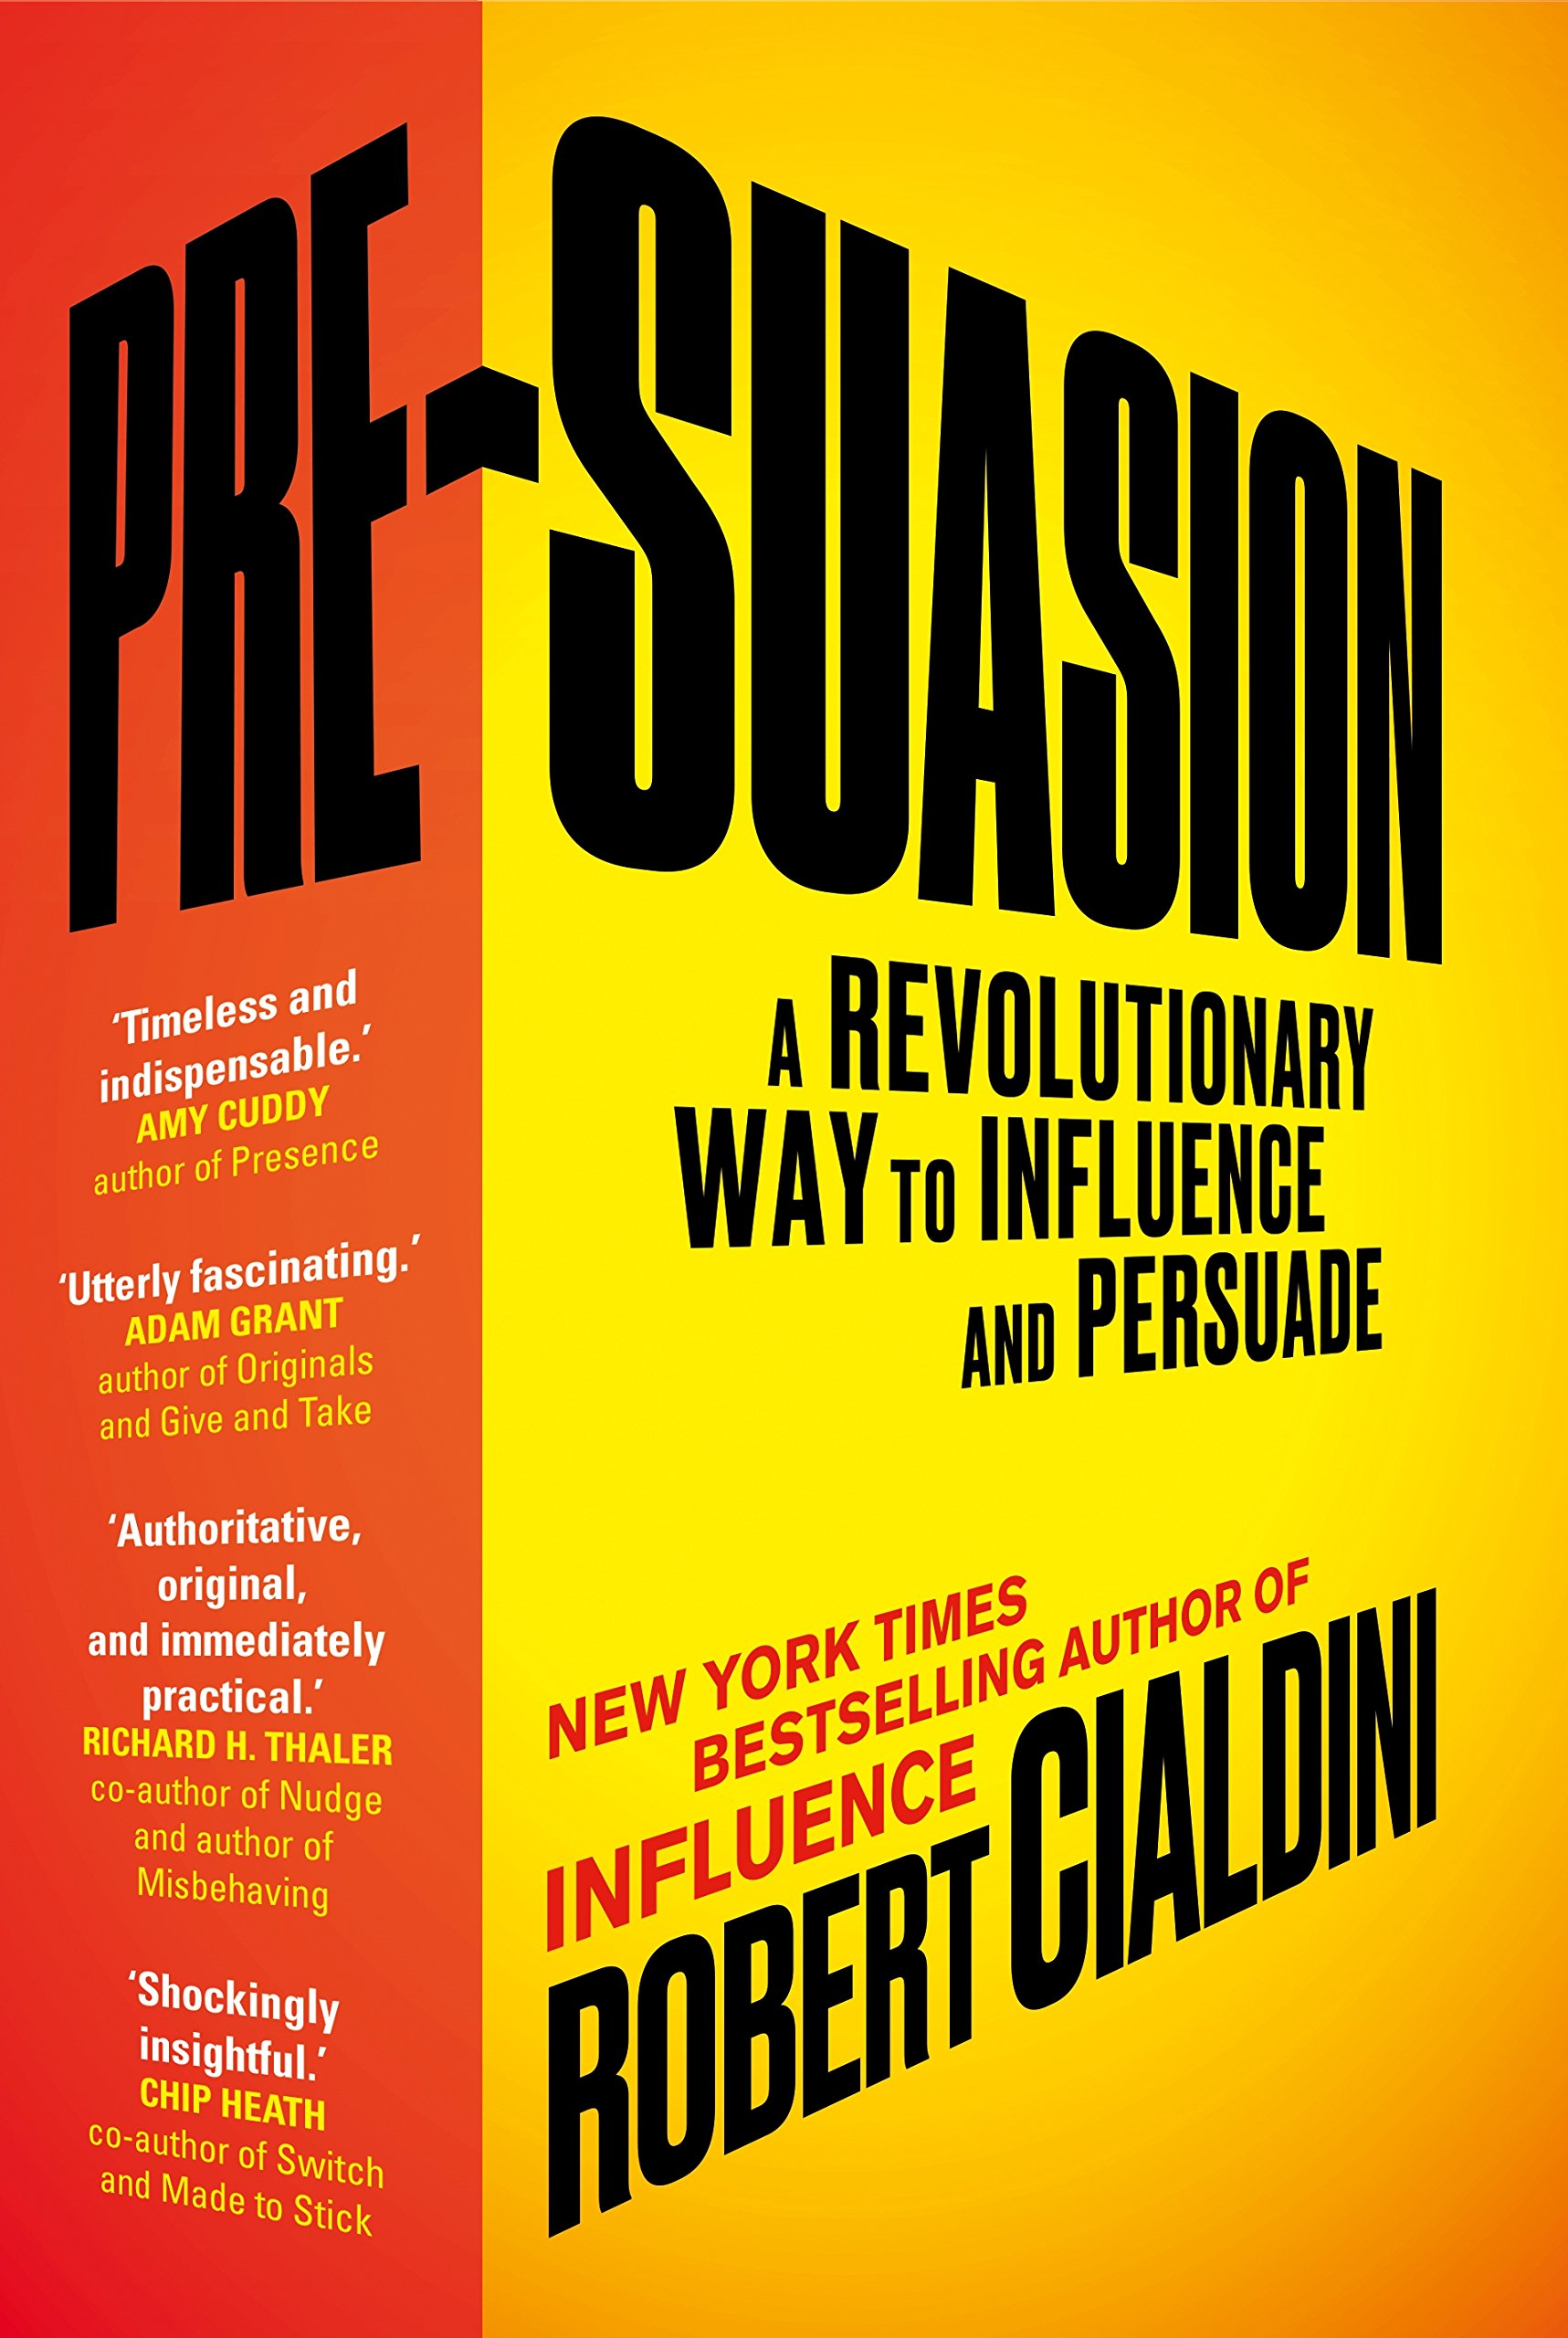 Image OfPre-Suasion: A Revolutionary Way To Influence And Persuade